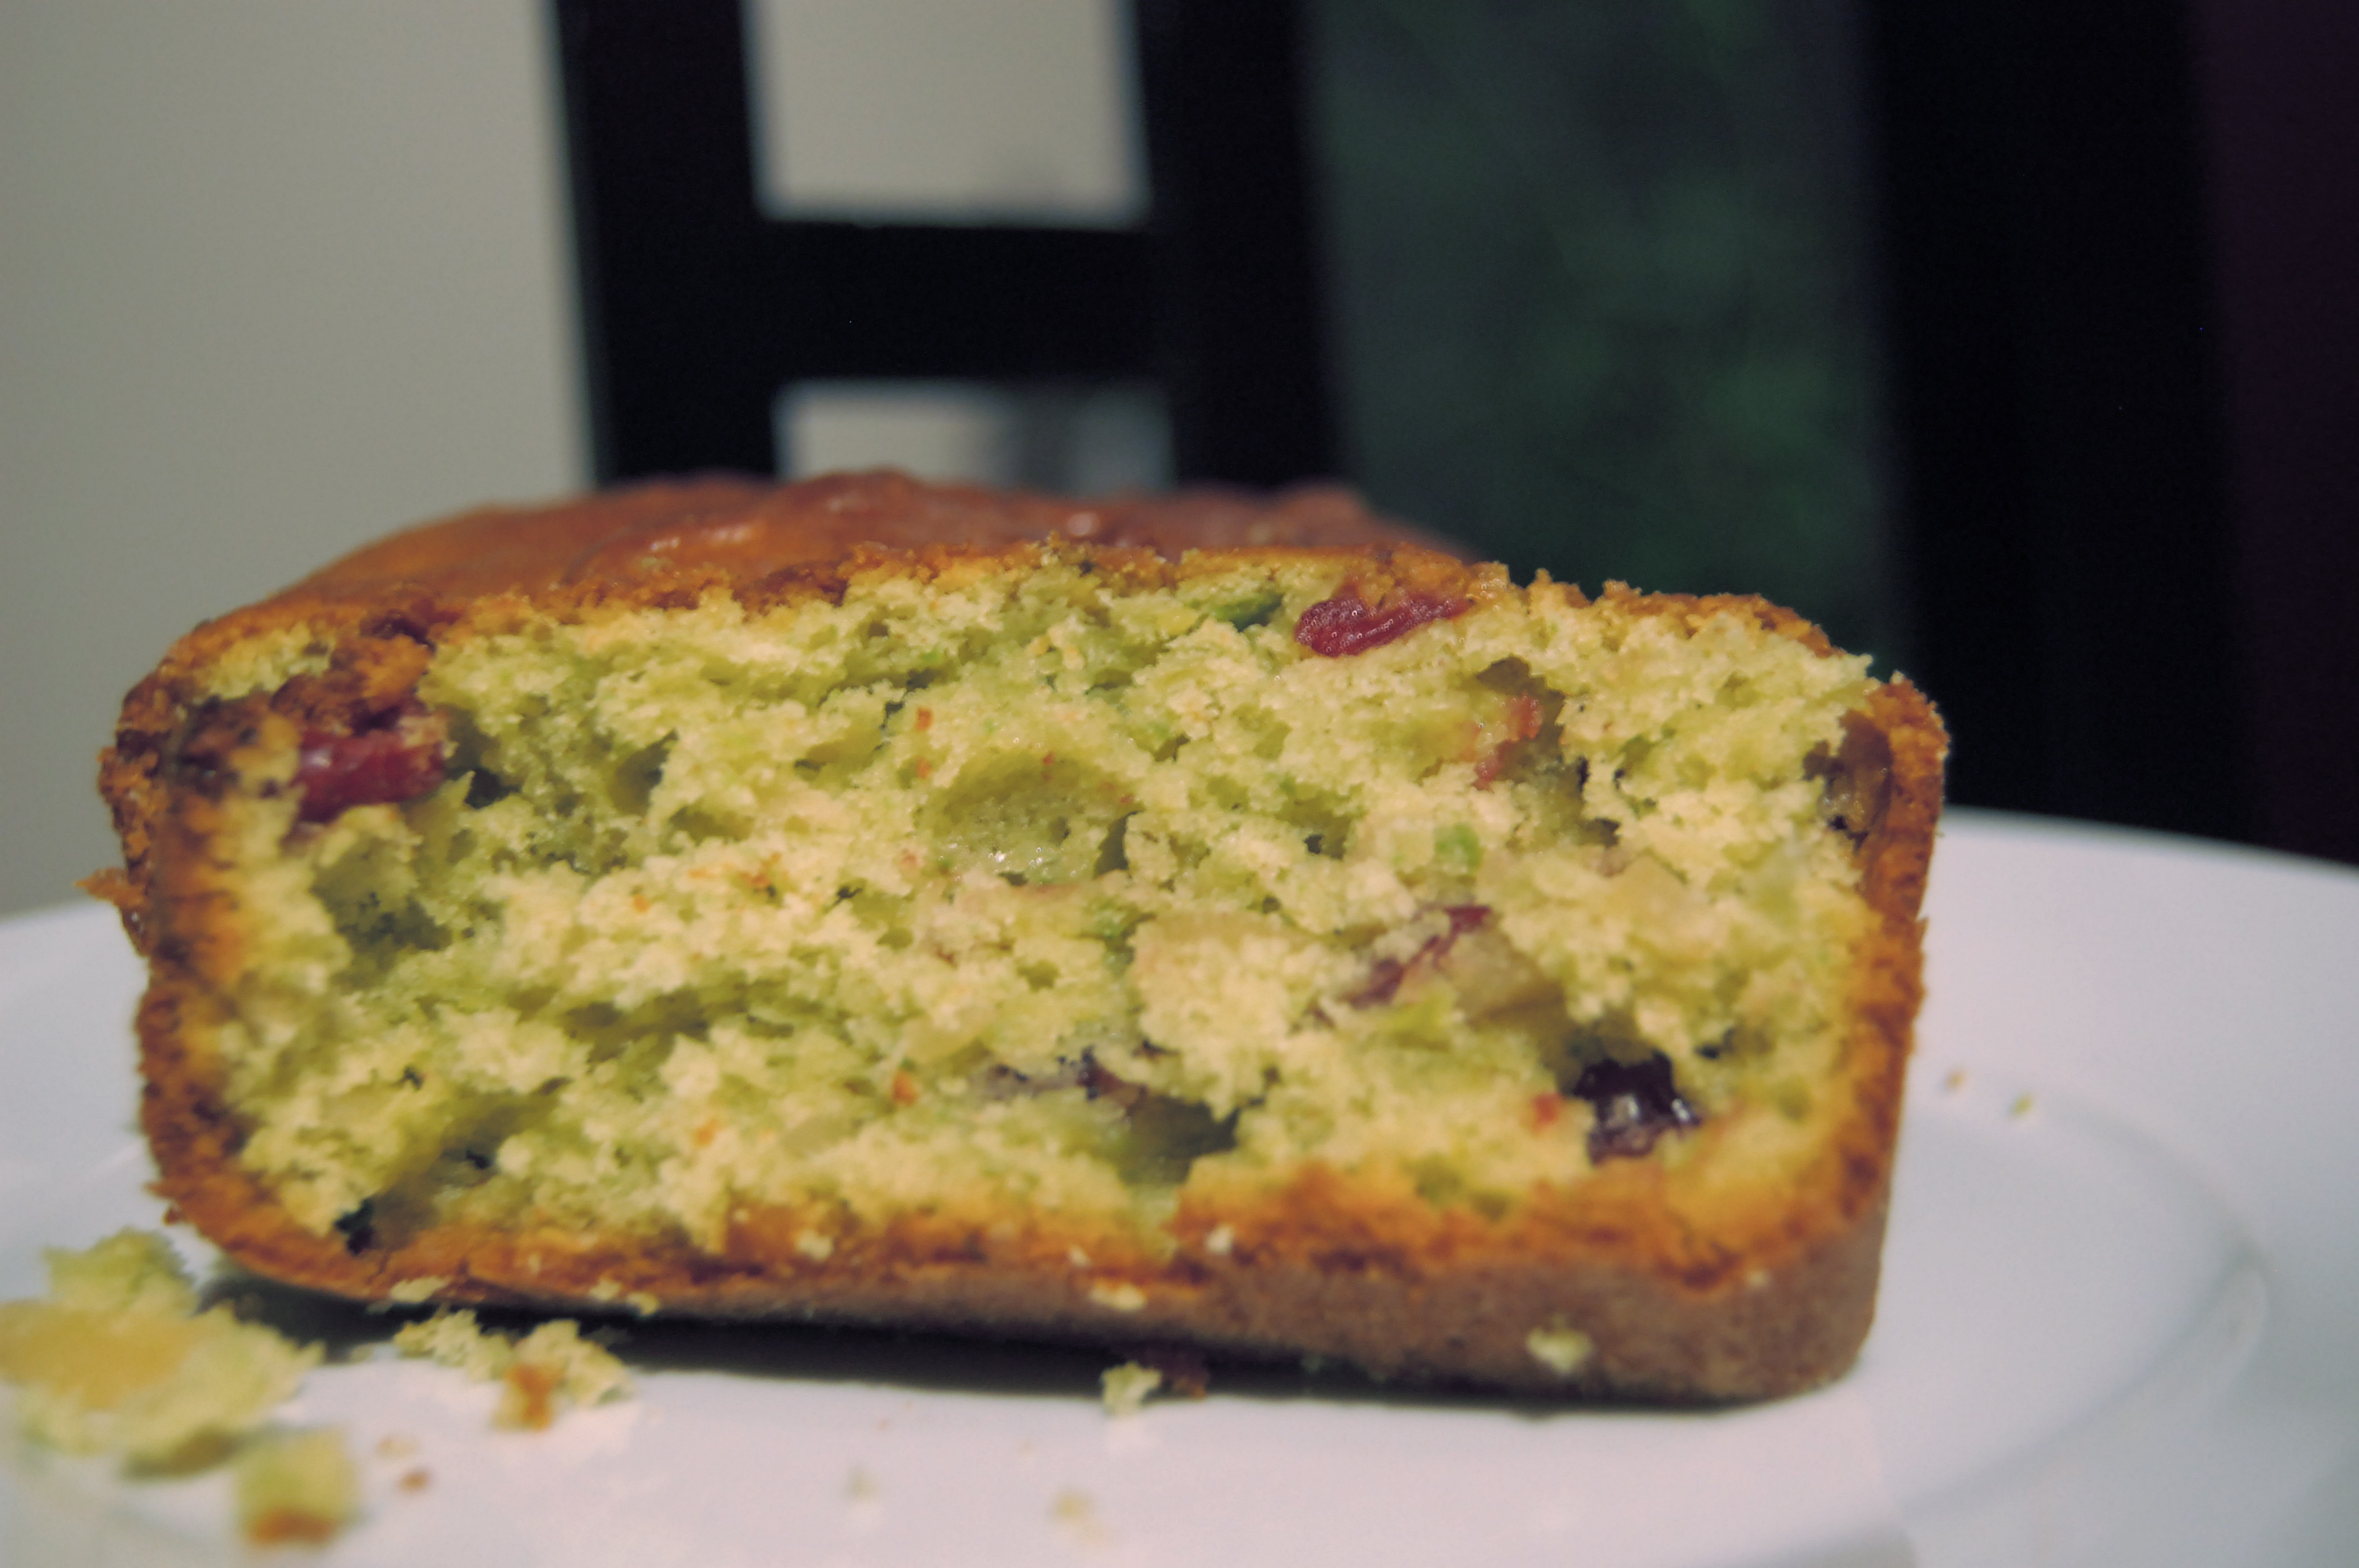 Avocado, Cranberry, and Almond Loaf